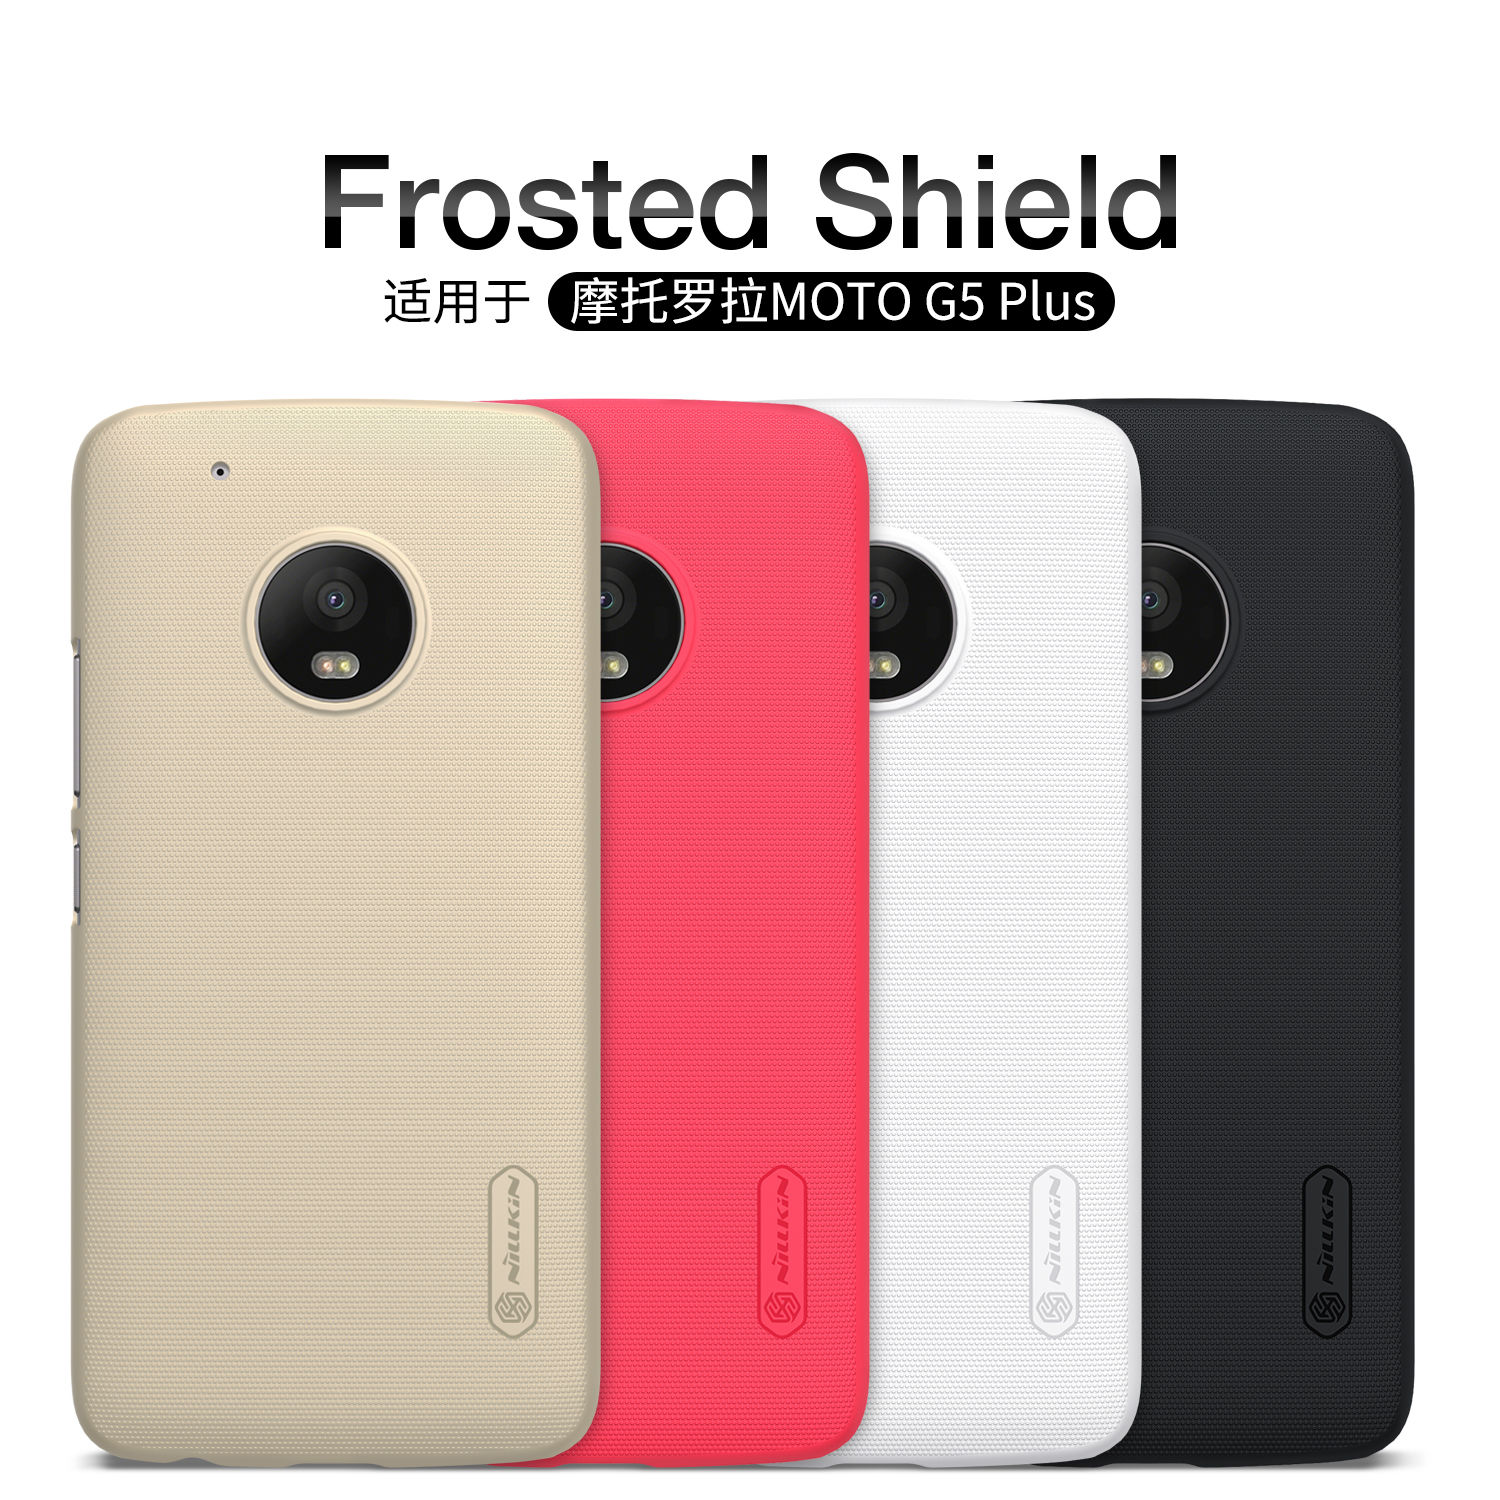 factory authentic 93445 25fb8 Details about For Moto G5S Plus G5 Nillkin Matte Slim Hard PC Back ...